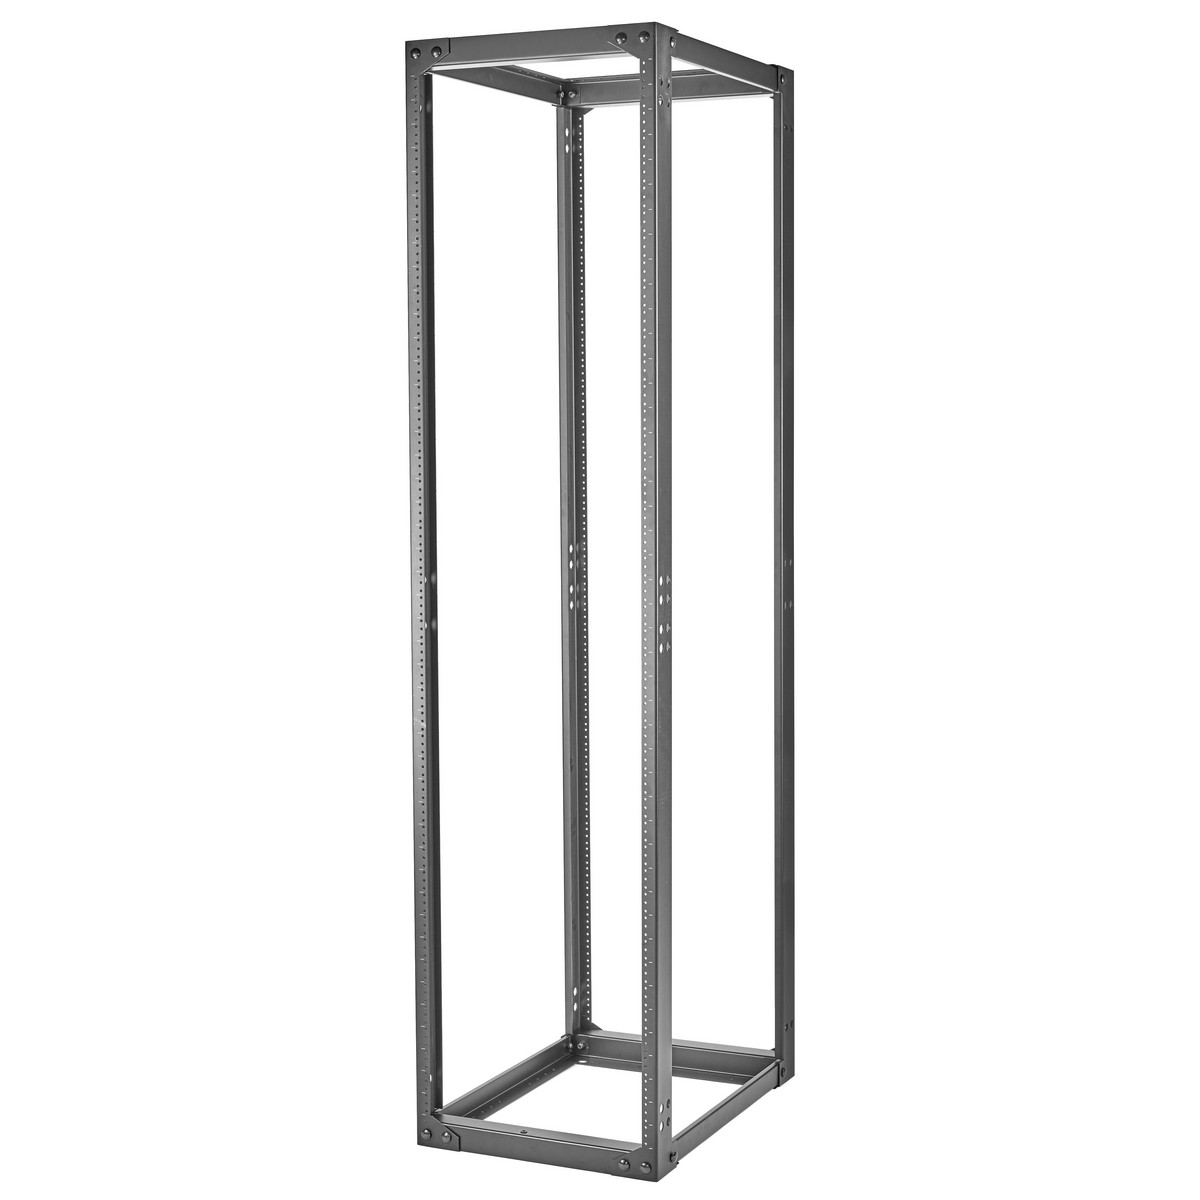 Hubbell SF841936T 4 Post Rack Floor Standing